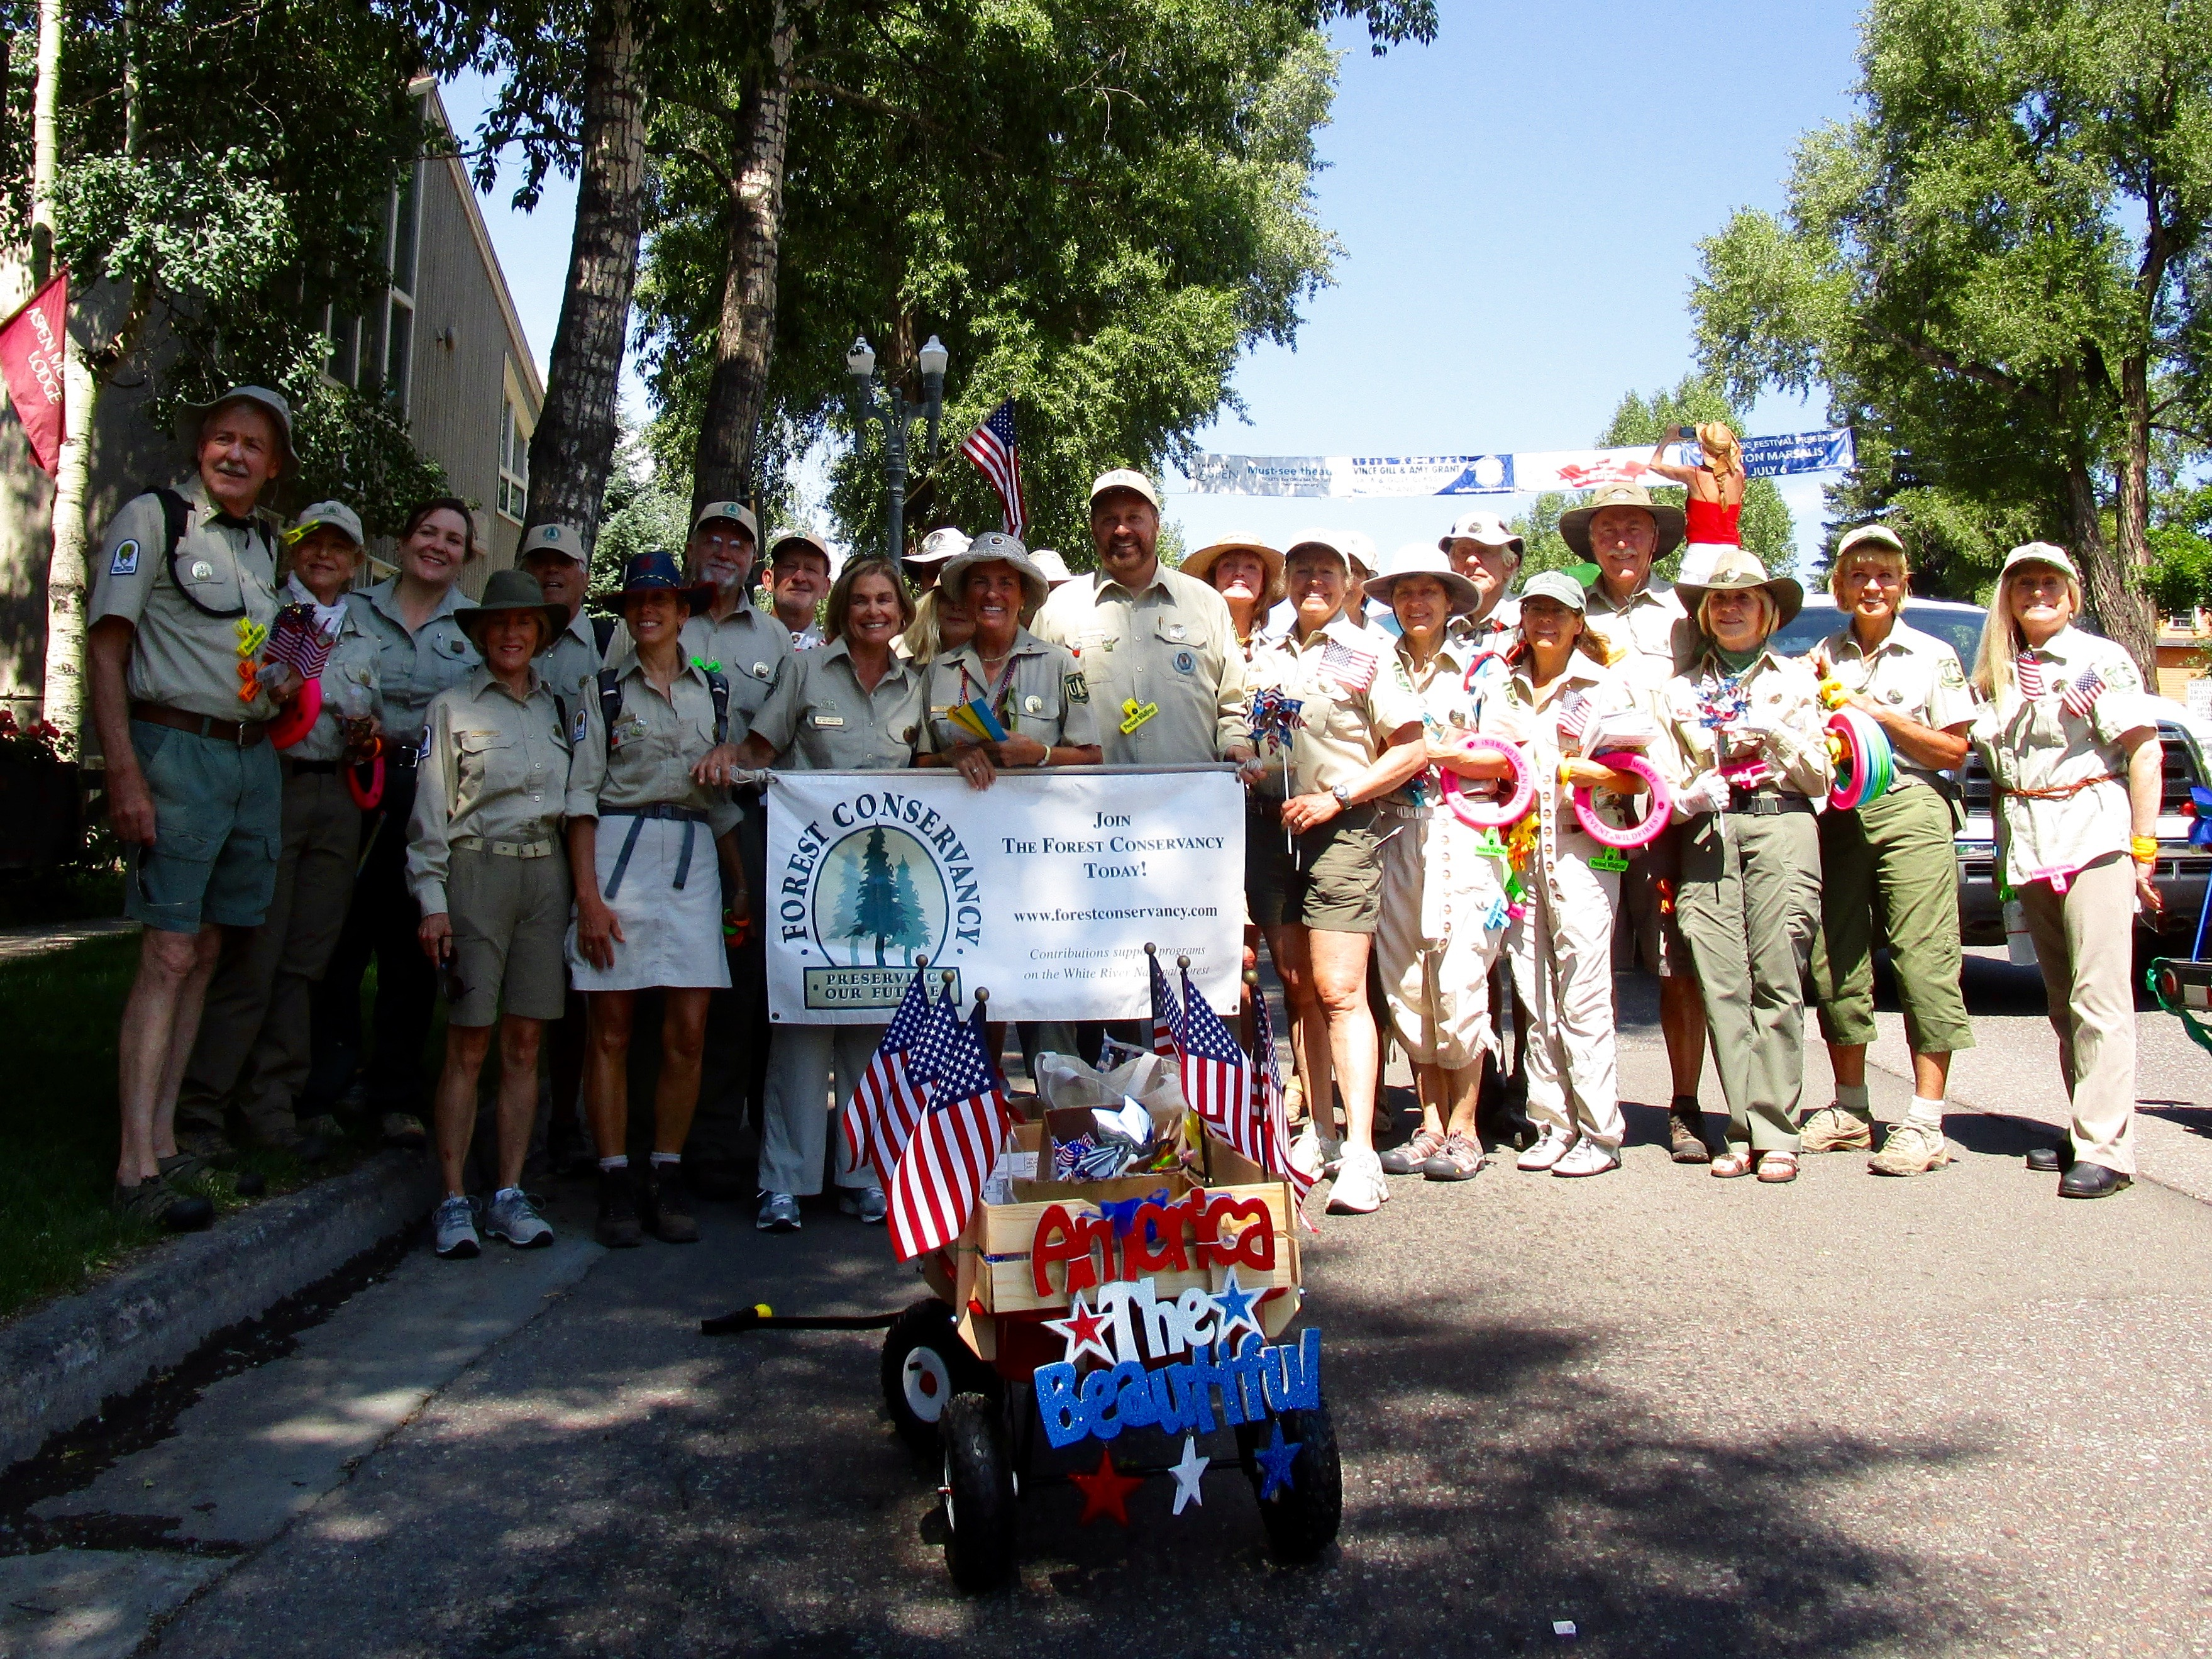 We volunteer USFS Rangers are ready to Go. We're just about to set off and escort Smokey (he gets to ride on the truck) in Aspen's 4th of July Parade.  Lots of swag to share with the kids who all want to meet the big guy.